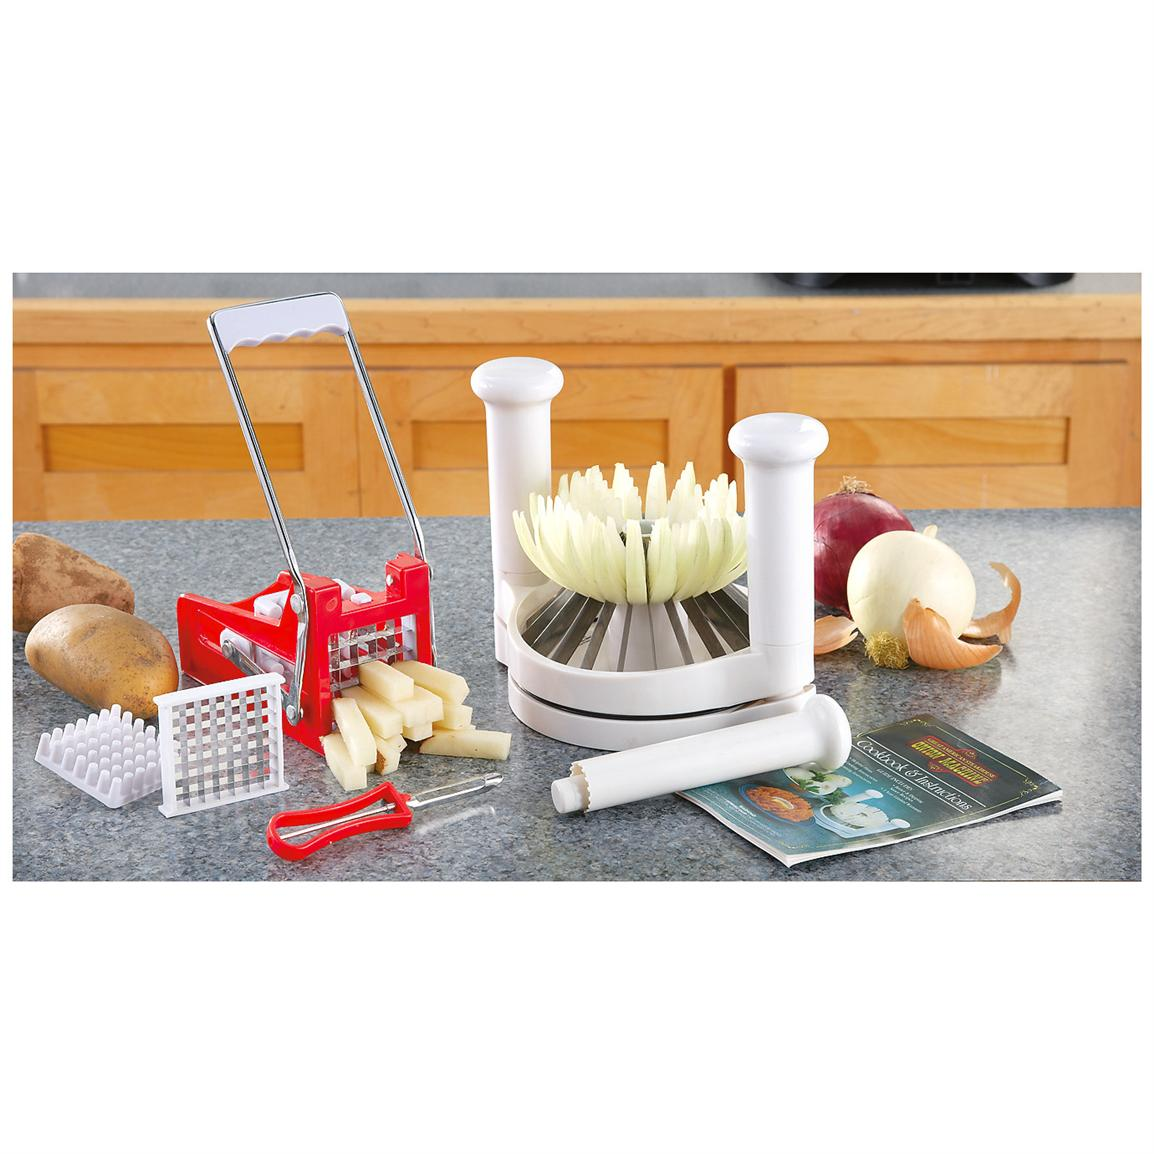 Onion Blossom Slicer & French Fry Cutter